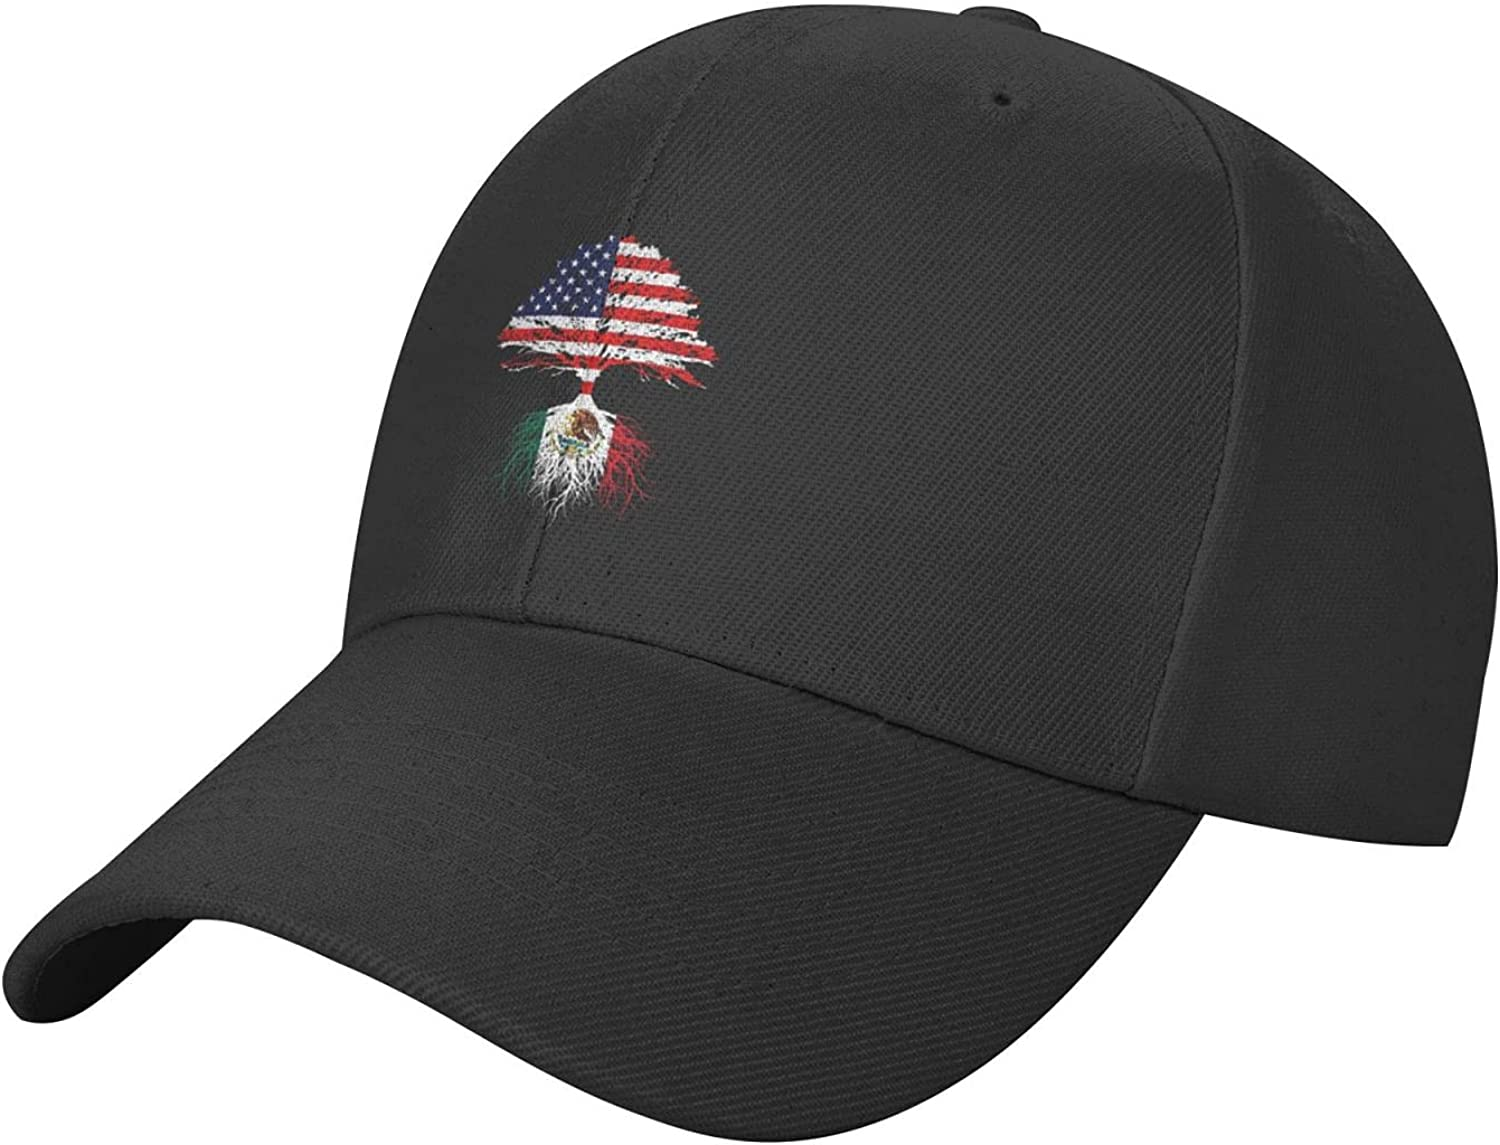 Mexico Flag Mexico Hat Baseball Cap, Adjustable Trucker Hat Black Dad Hat Polo for Adults Men Women Outdoor